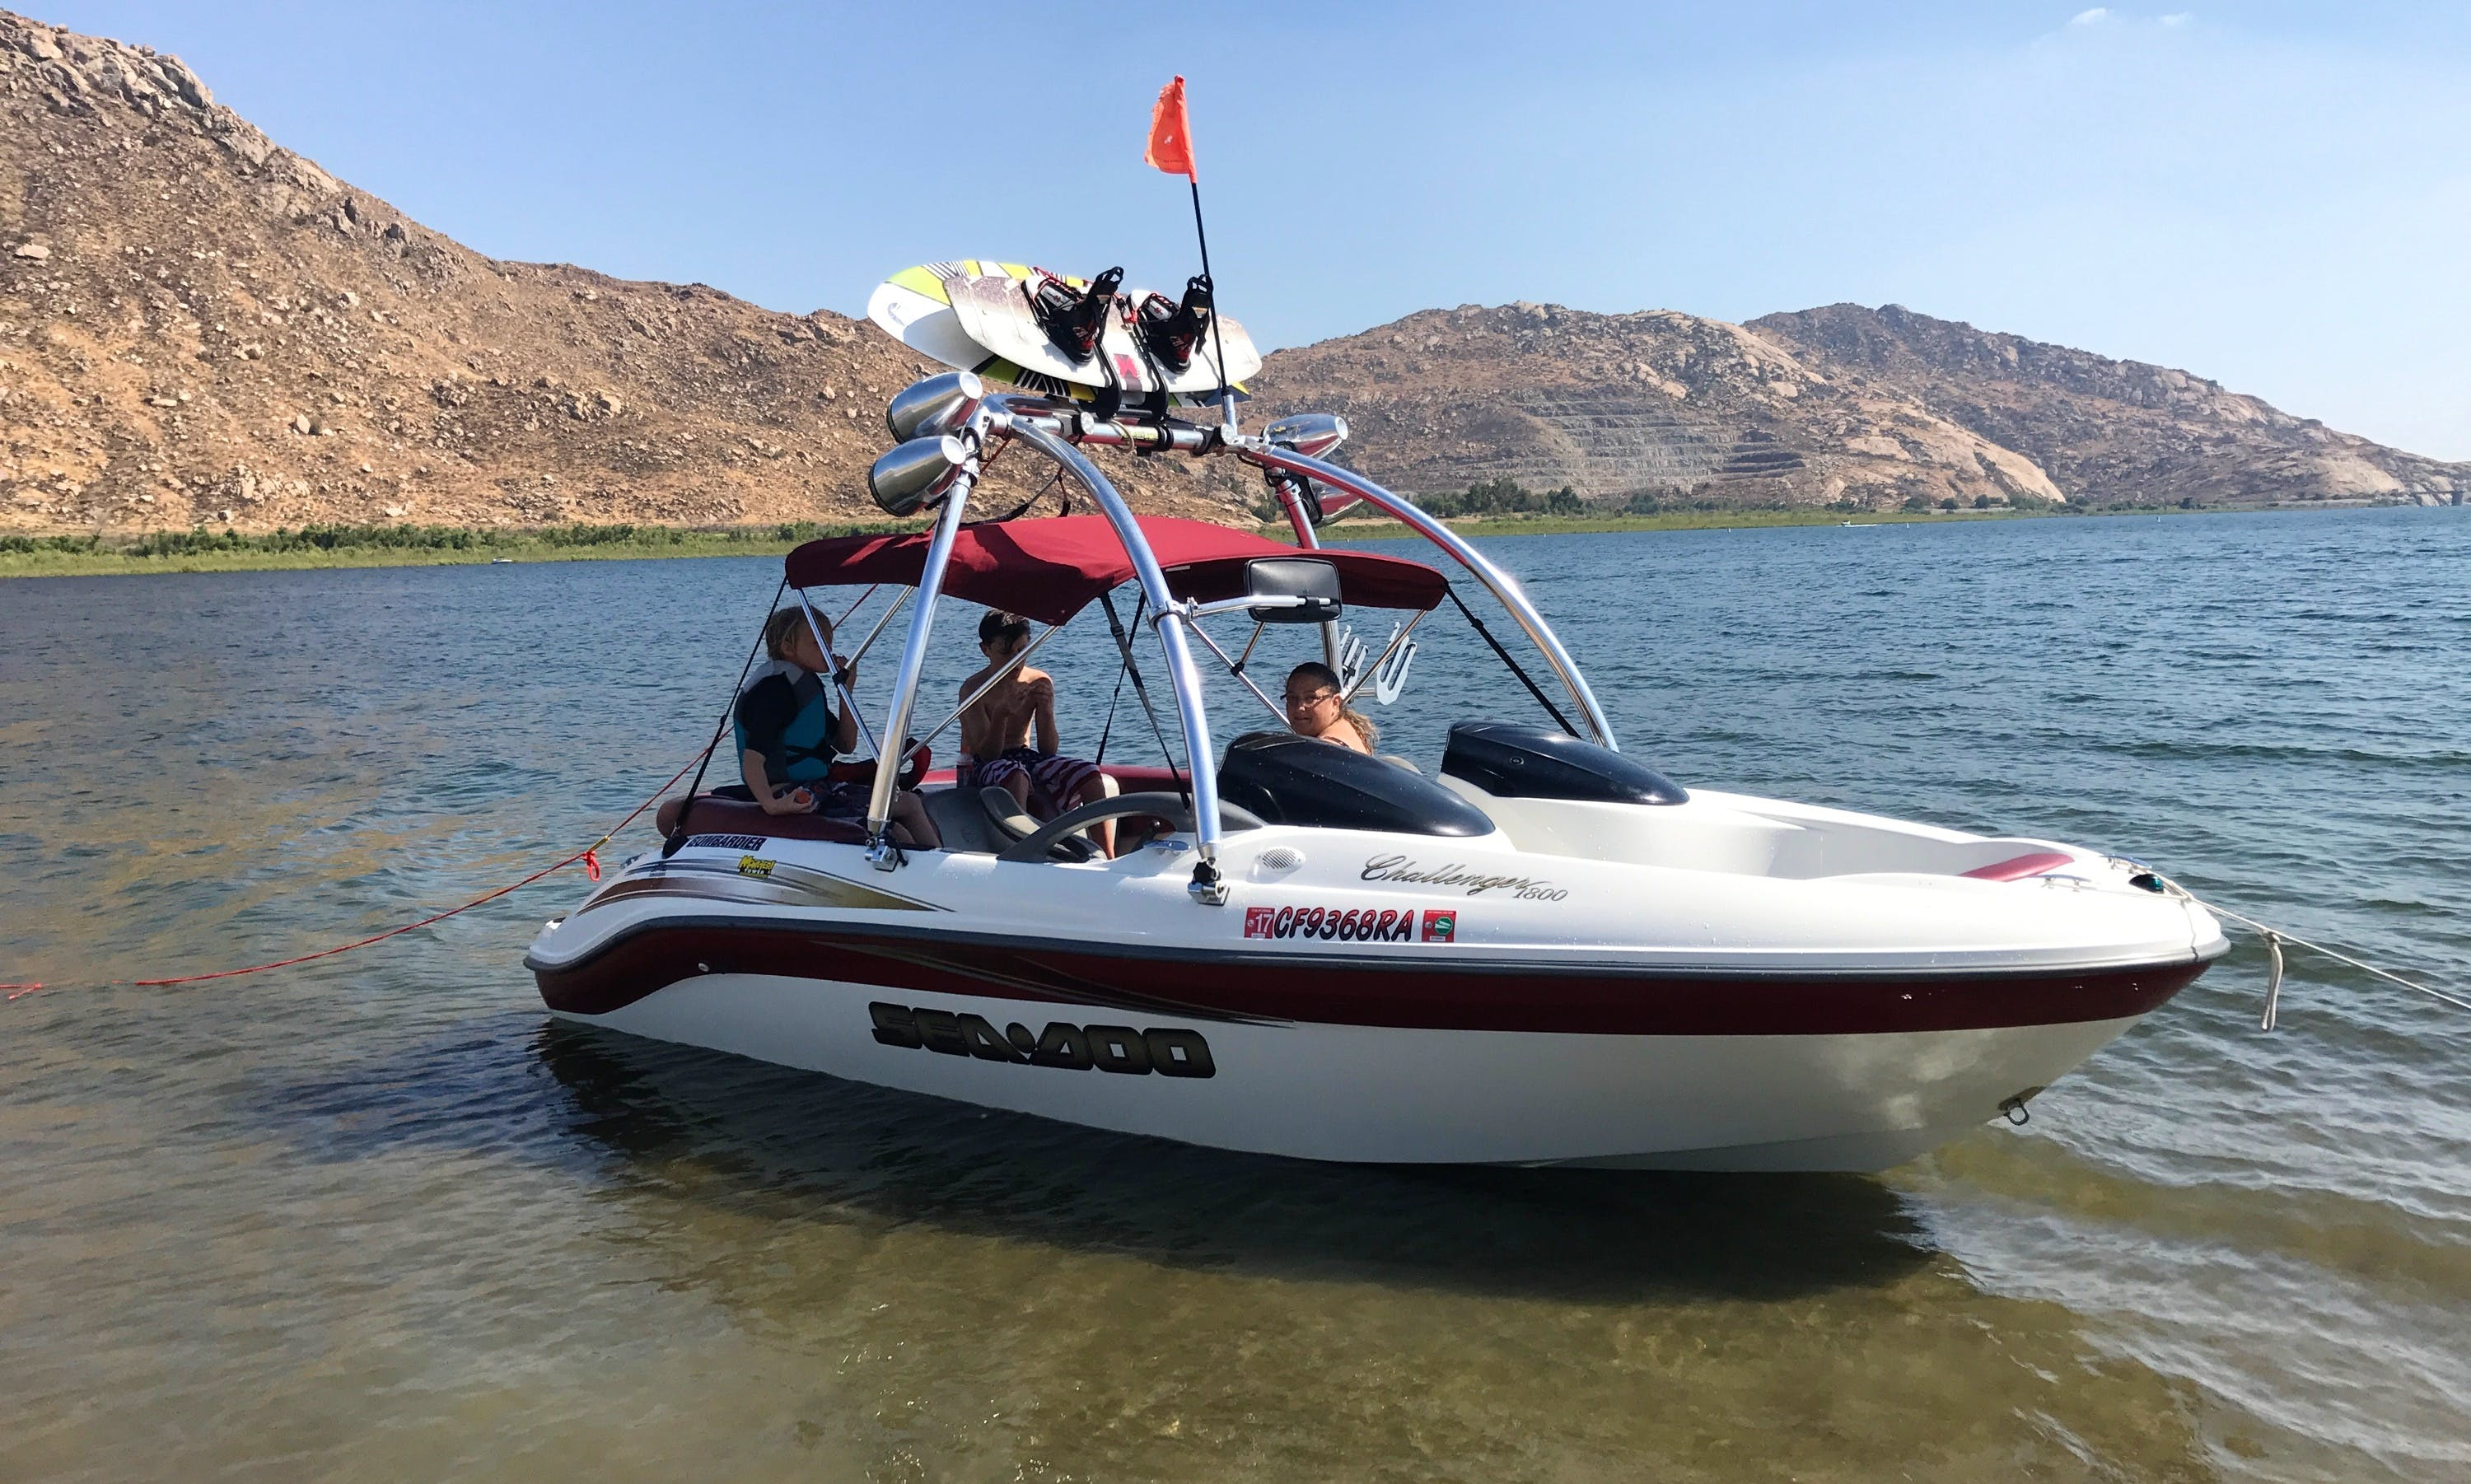 Inboard Propulsion rental in Hemet, California